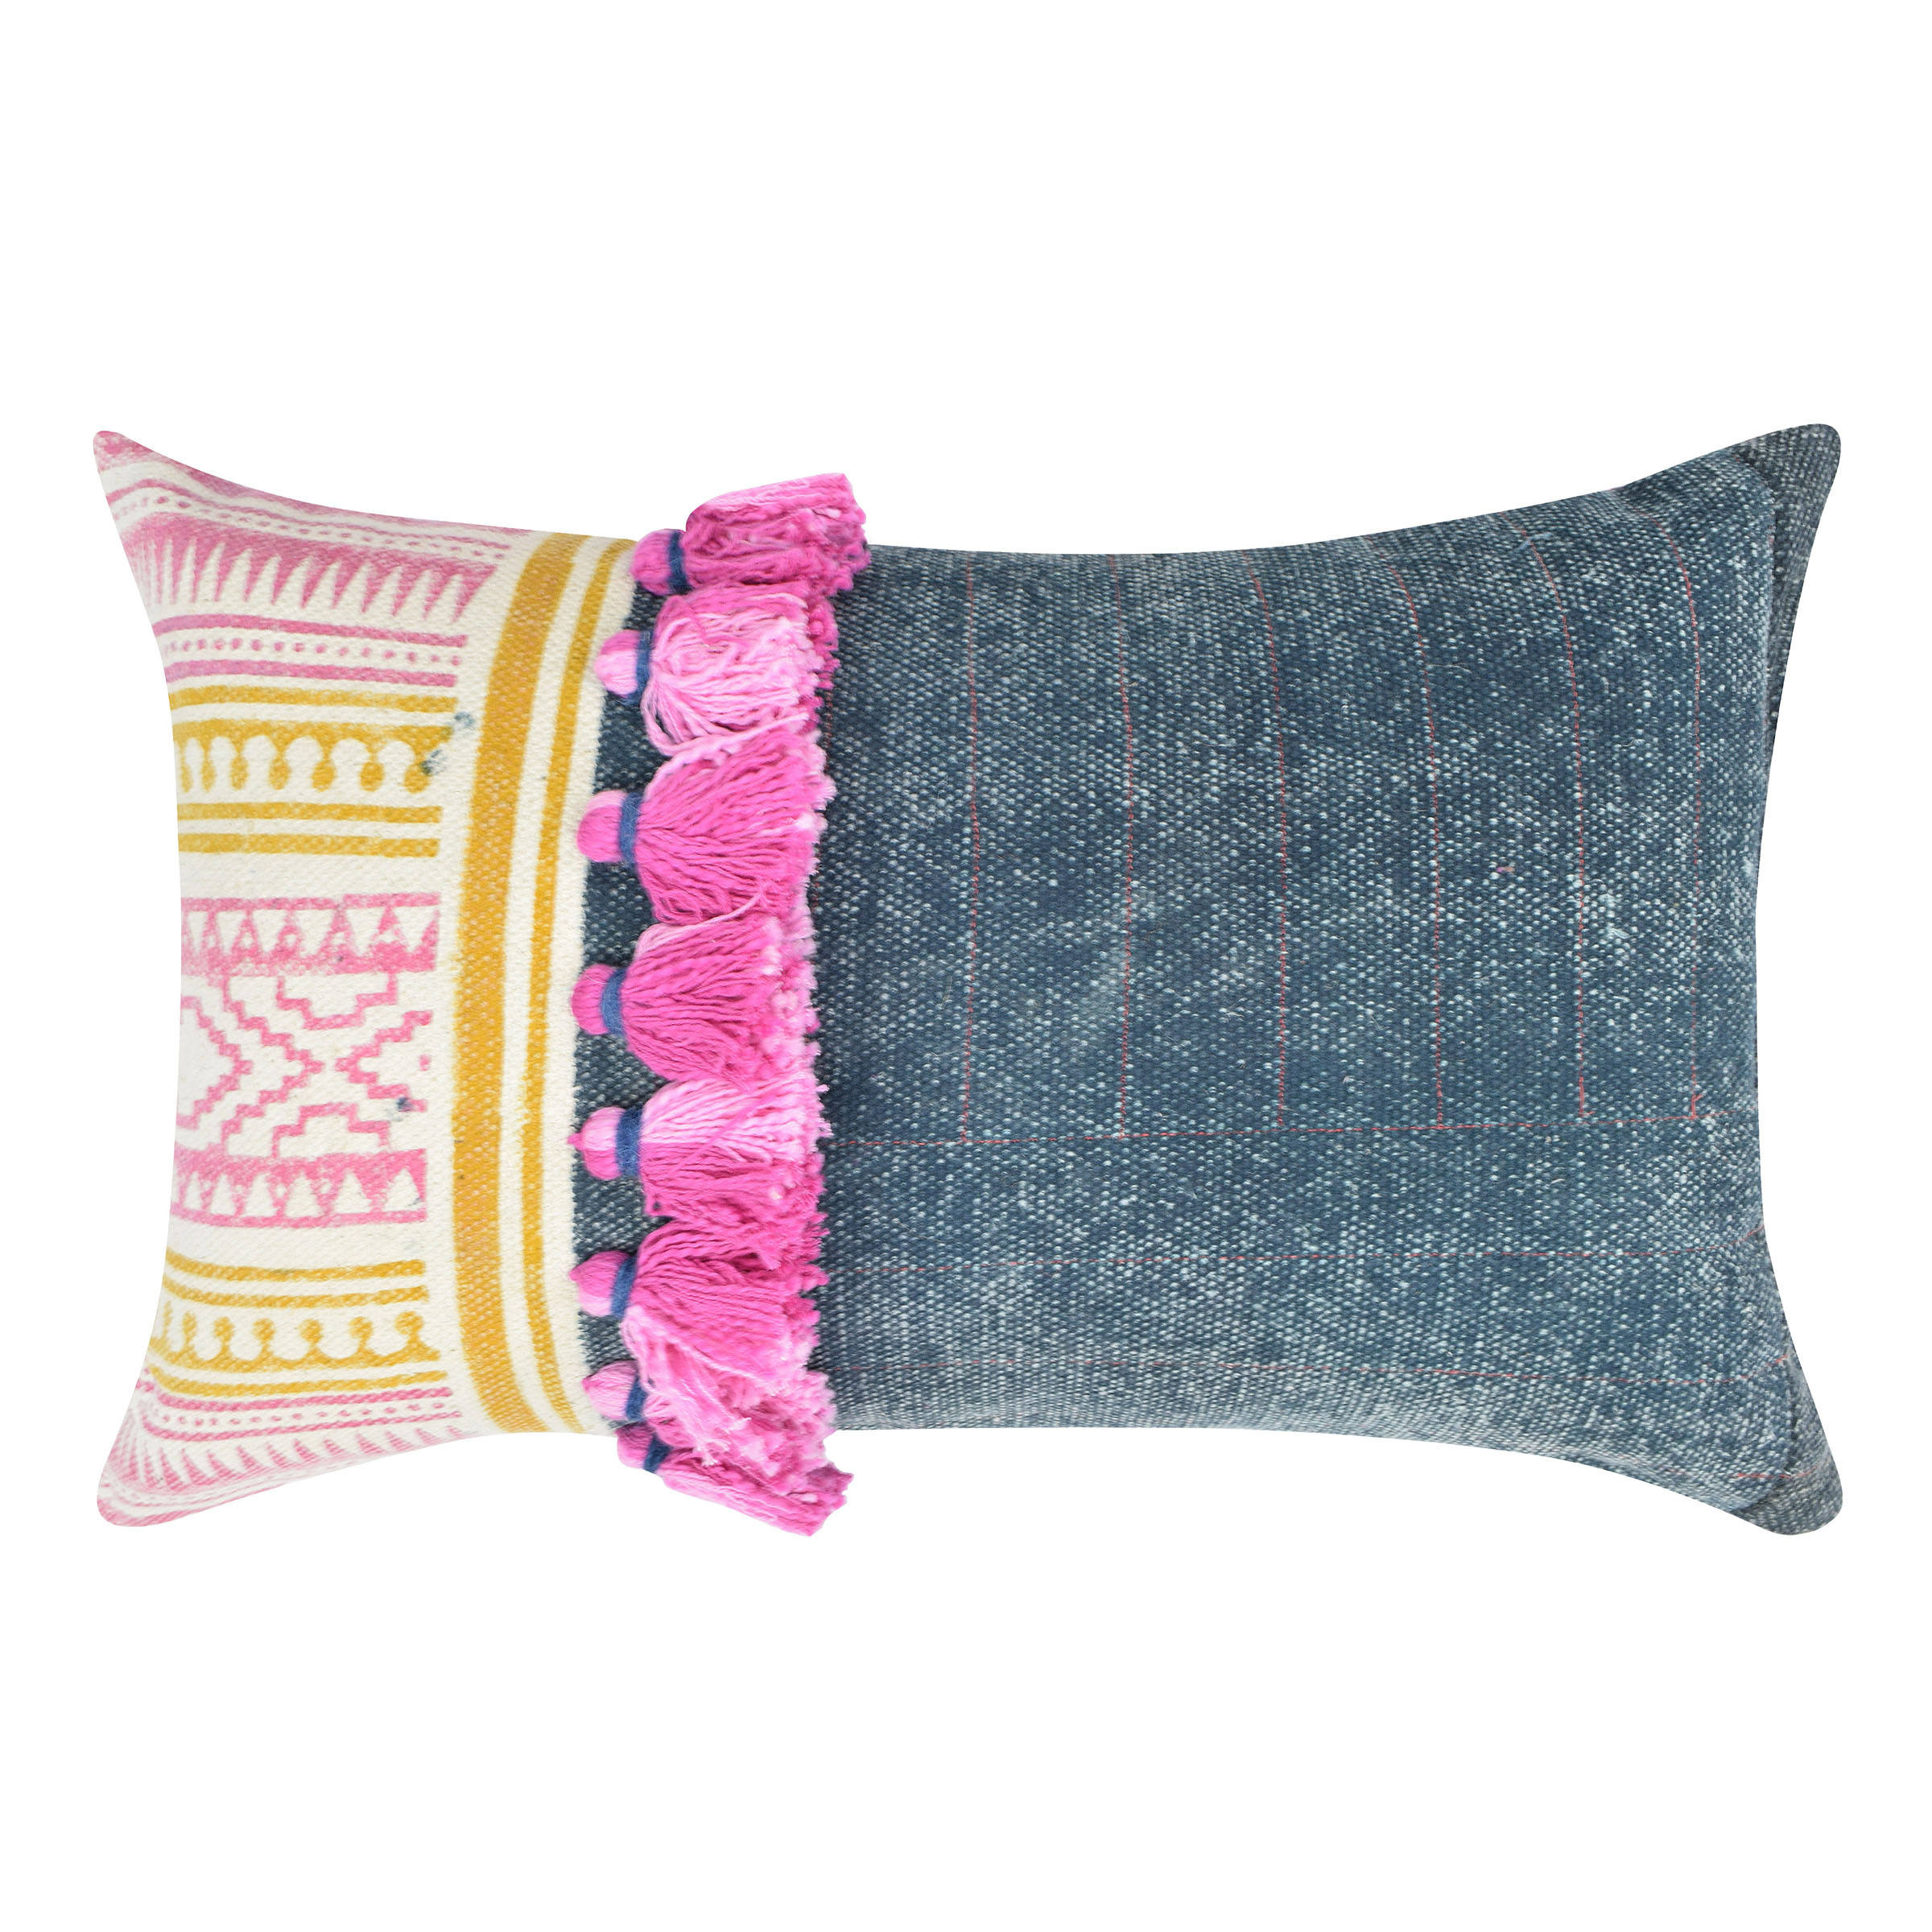 Multi Colour Cotton Hand Embroidery Pillow Geometric Cushion Cover